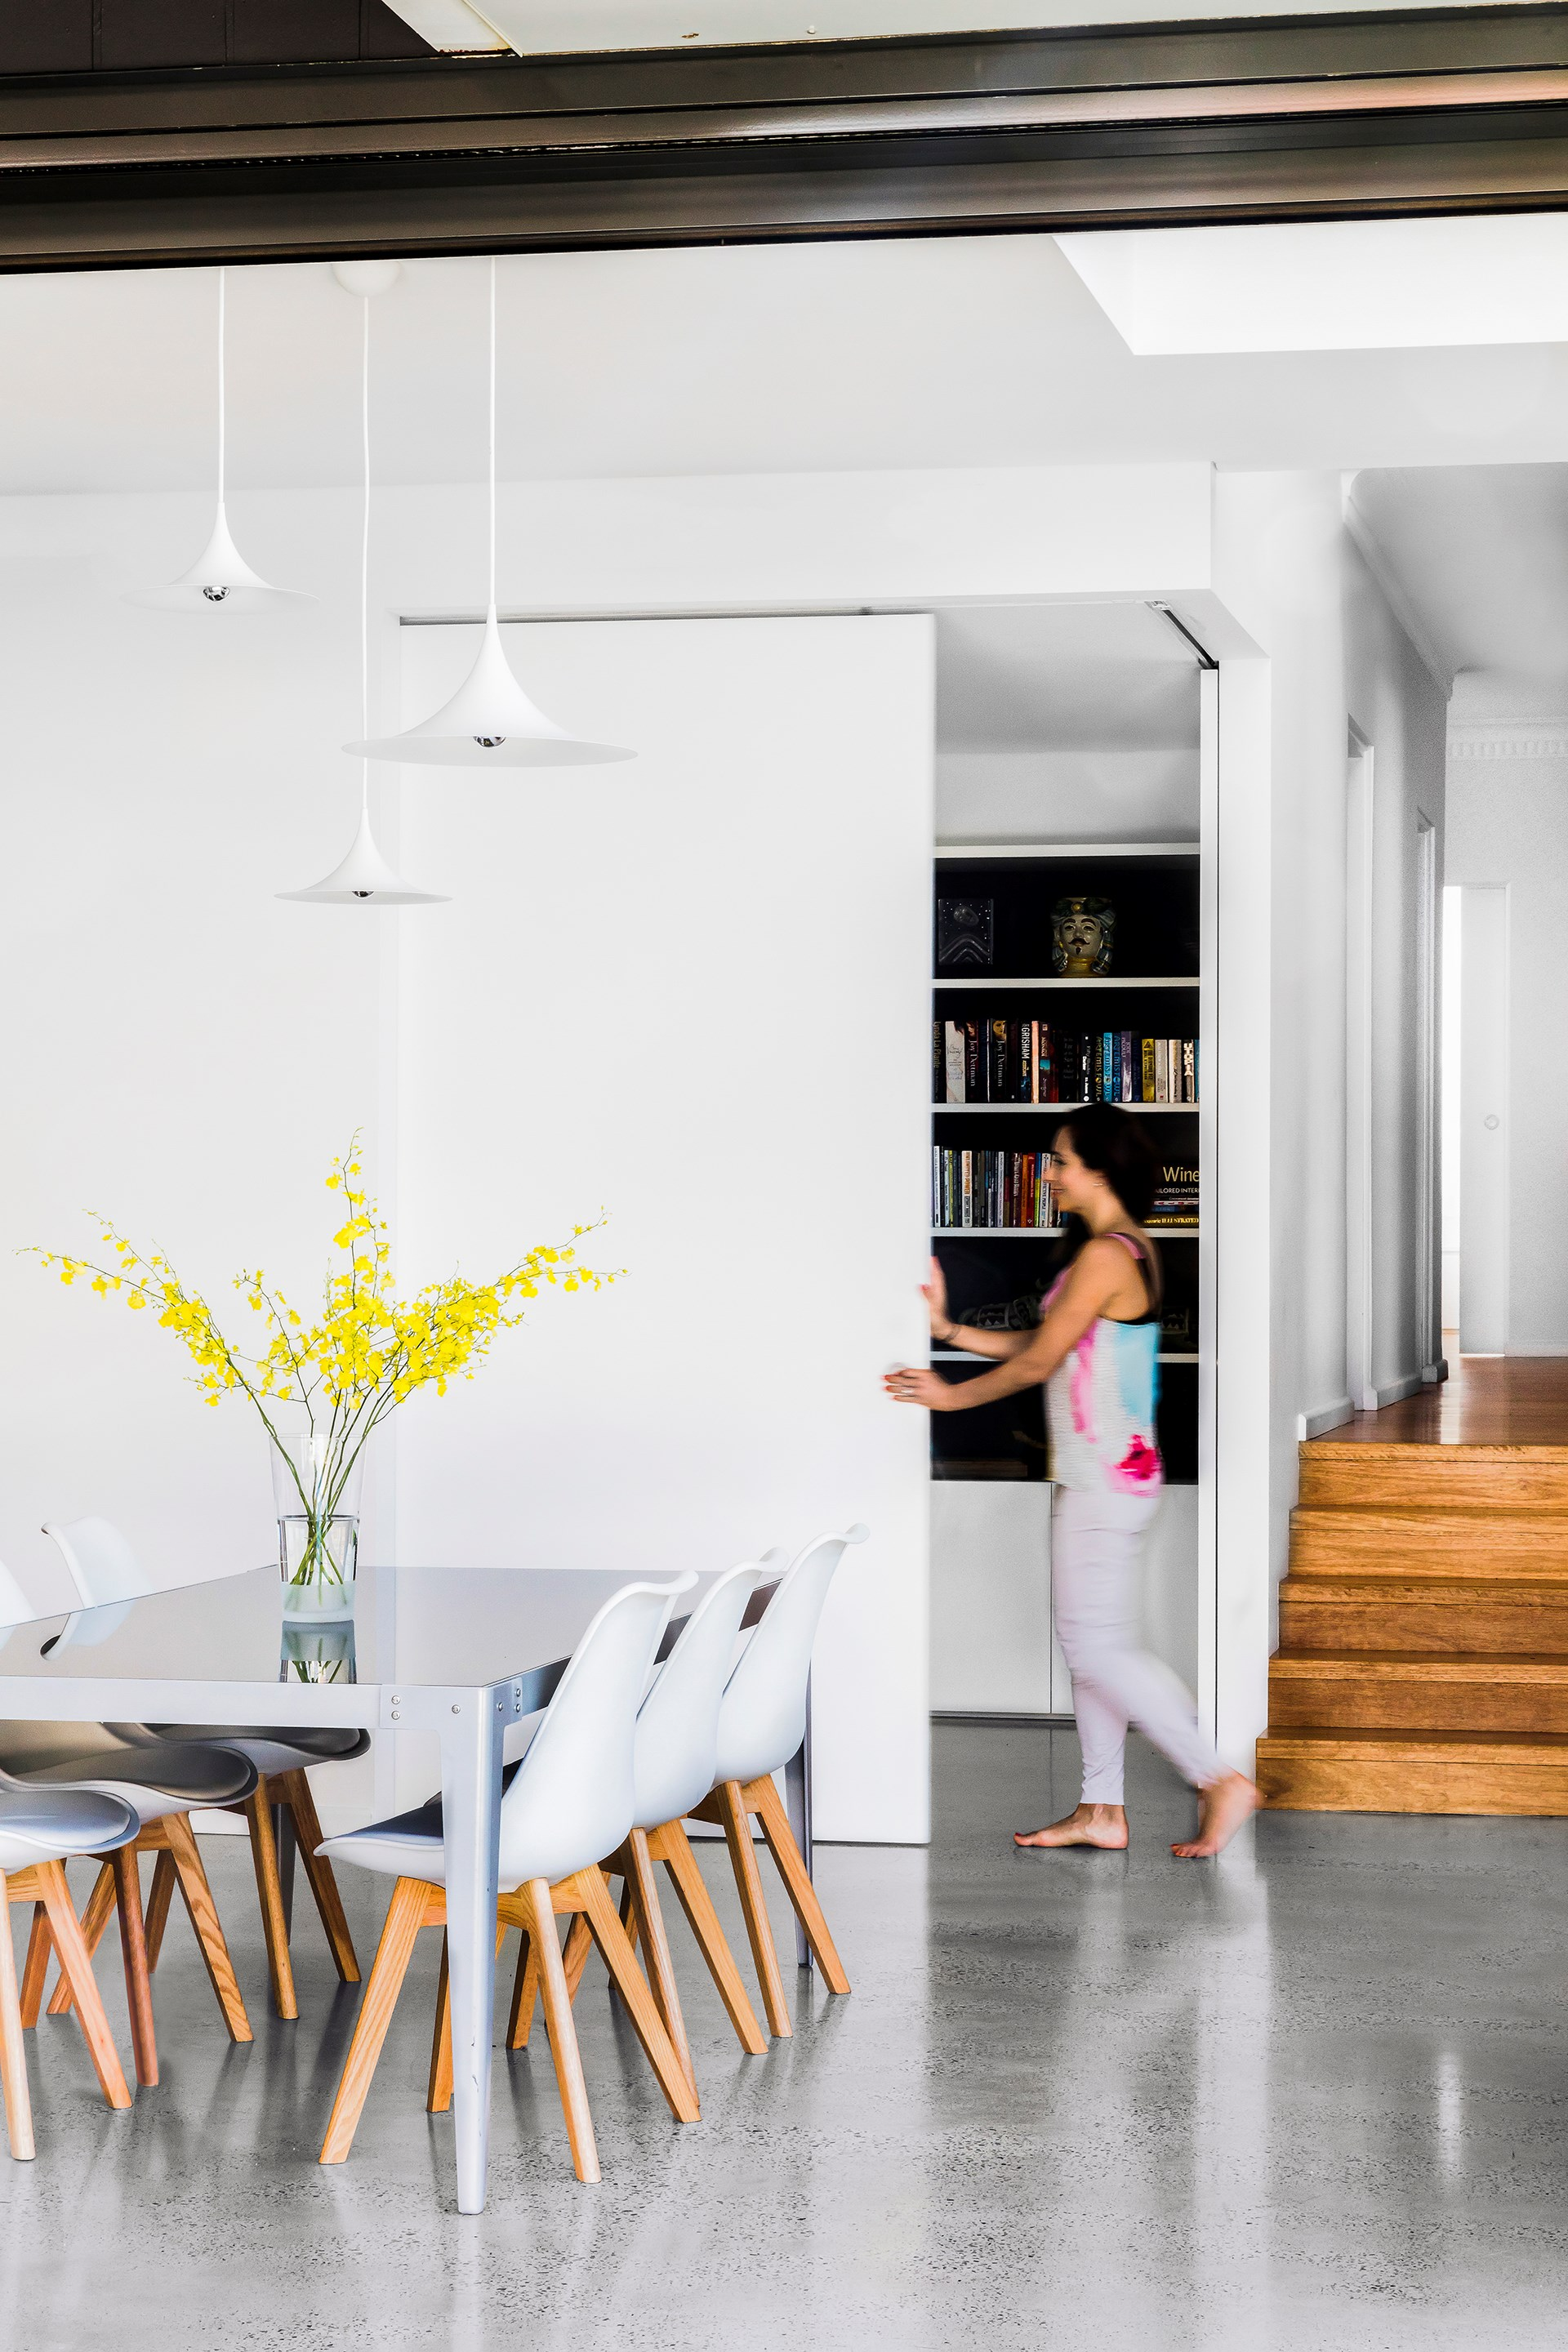 """See more of this [sizzling 21st-century home](http://www.homestolove.com.au/1940s-facade-hides-a-sizzling-21st-century-home-3269